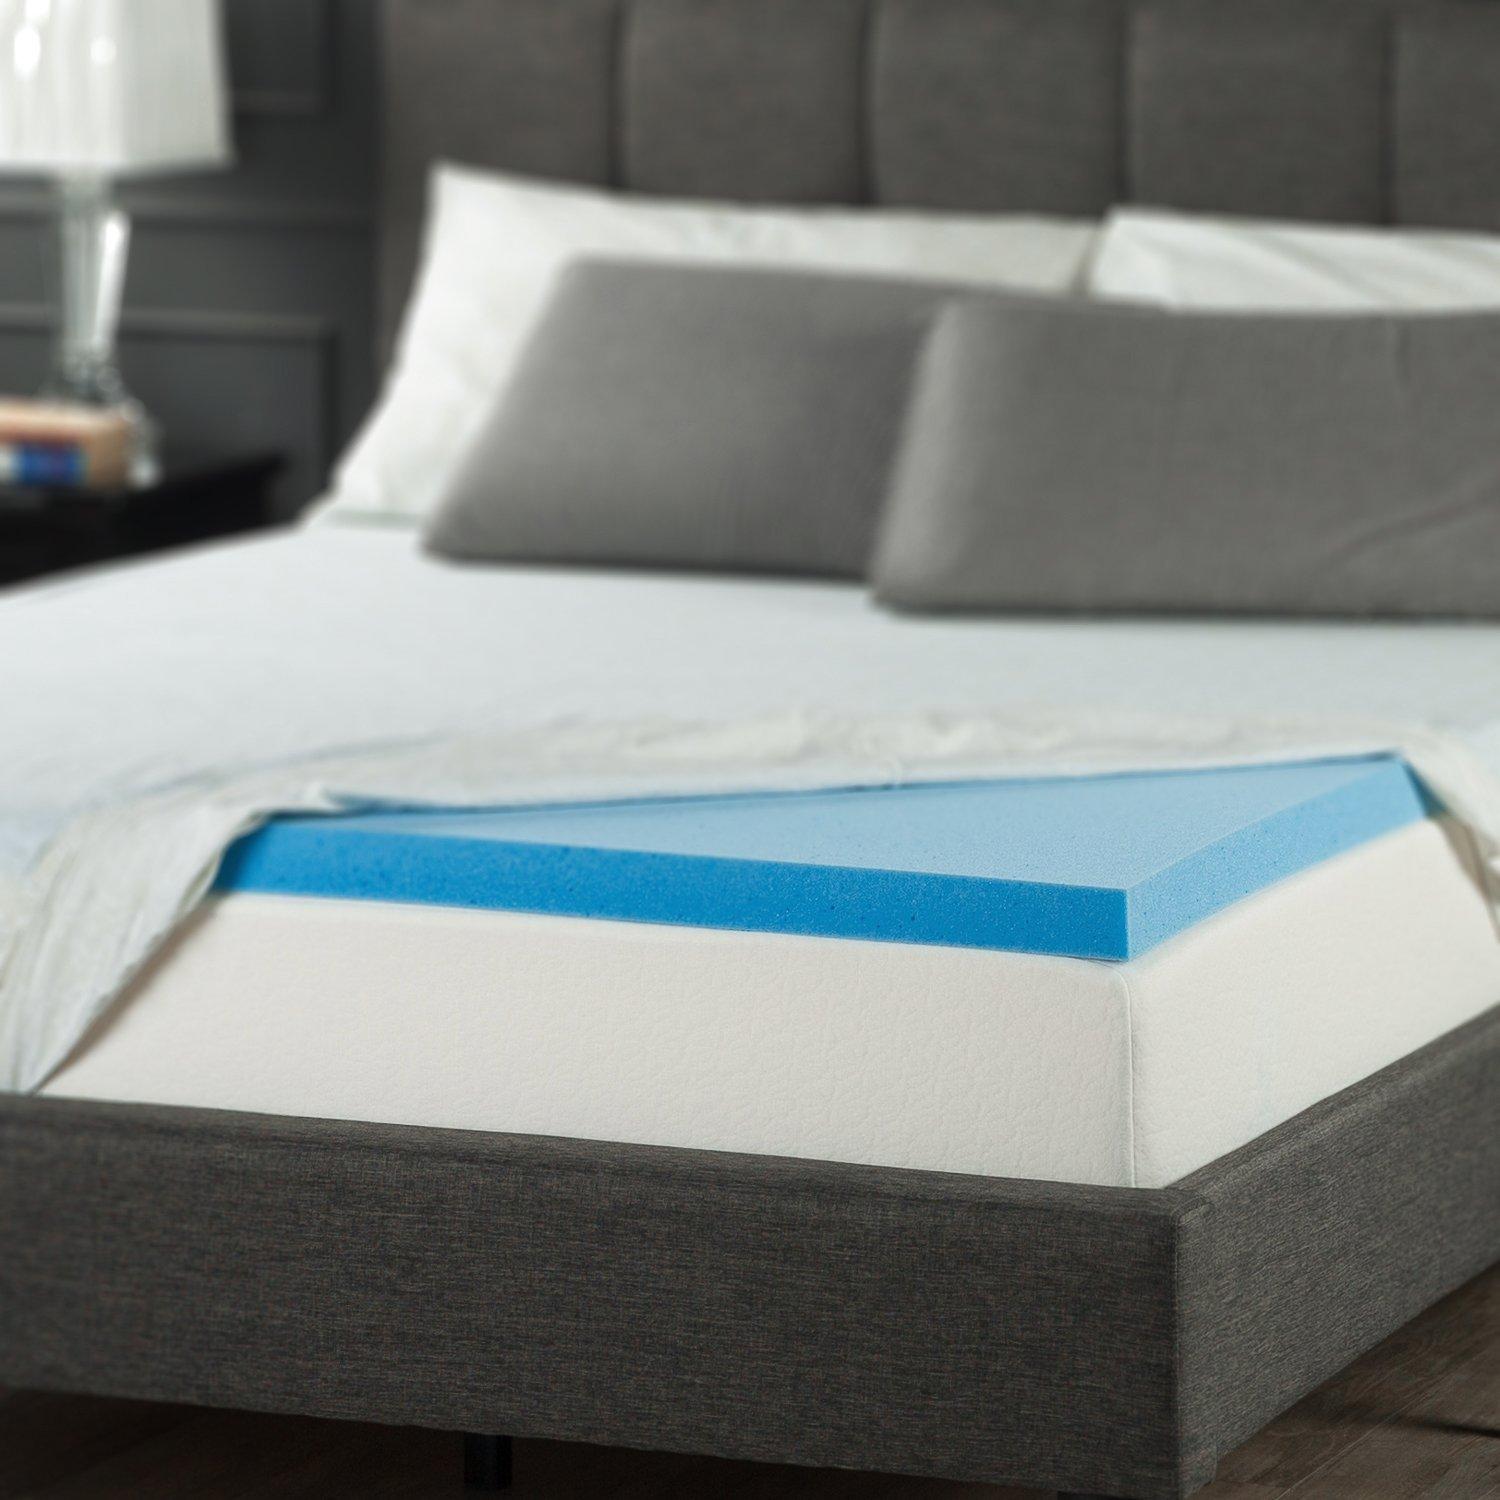 candybar plush serta topper ich pillow mattress icomfort hybrid blue fusion products pspt top bedding